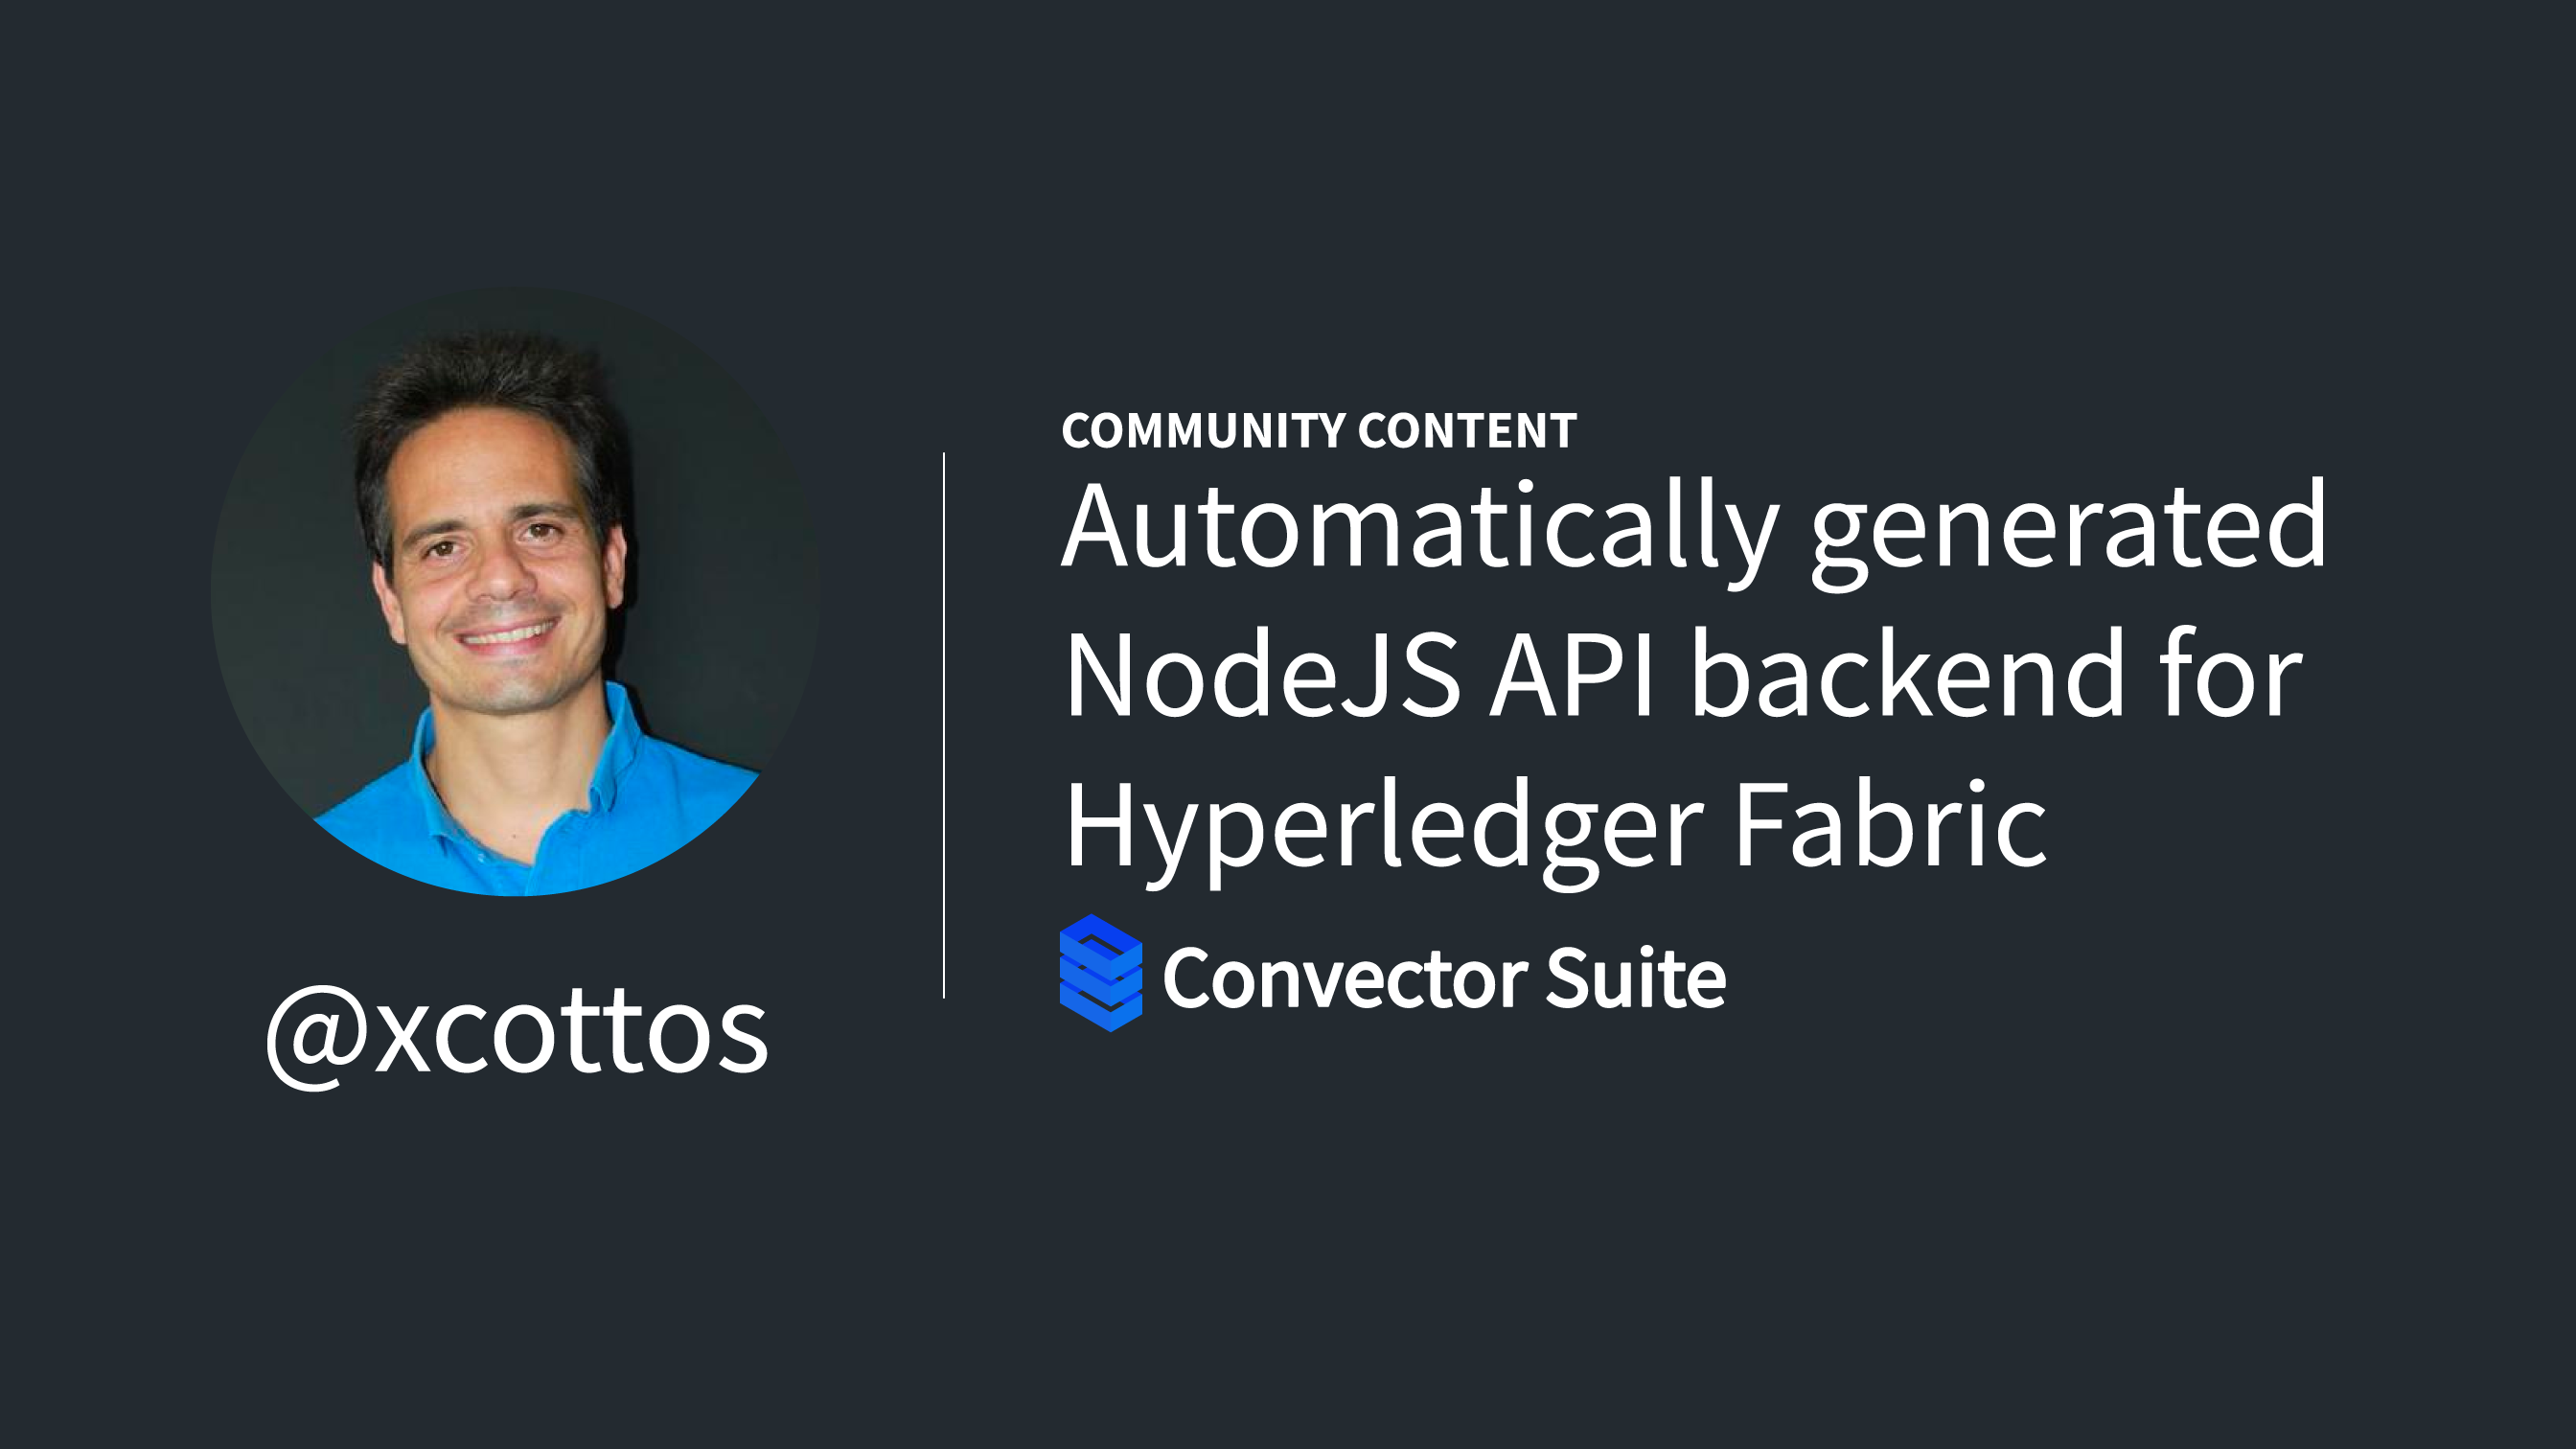 How to generate automatically a NodeJS API backend for Hyperledger